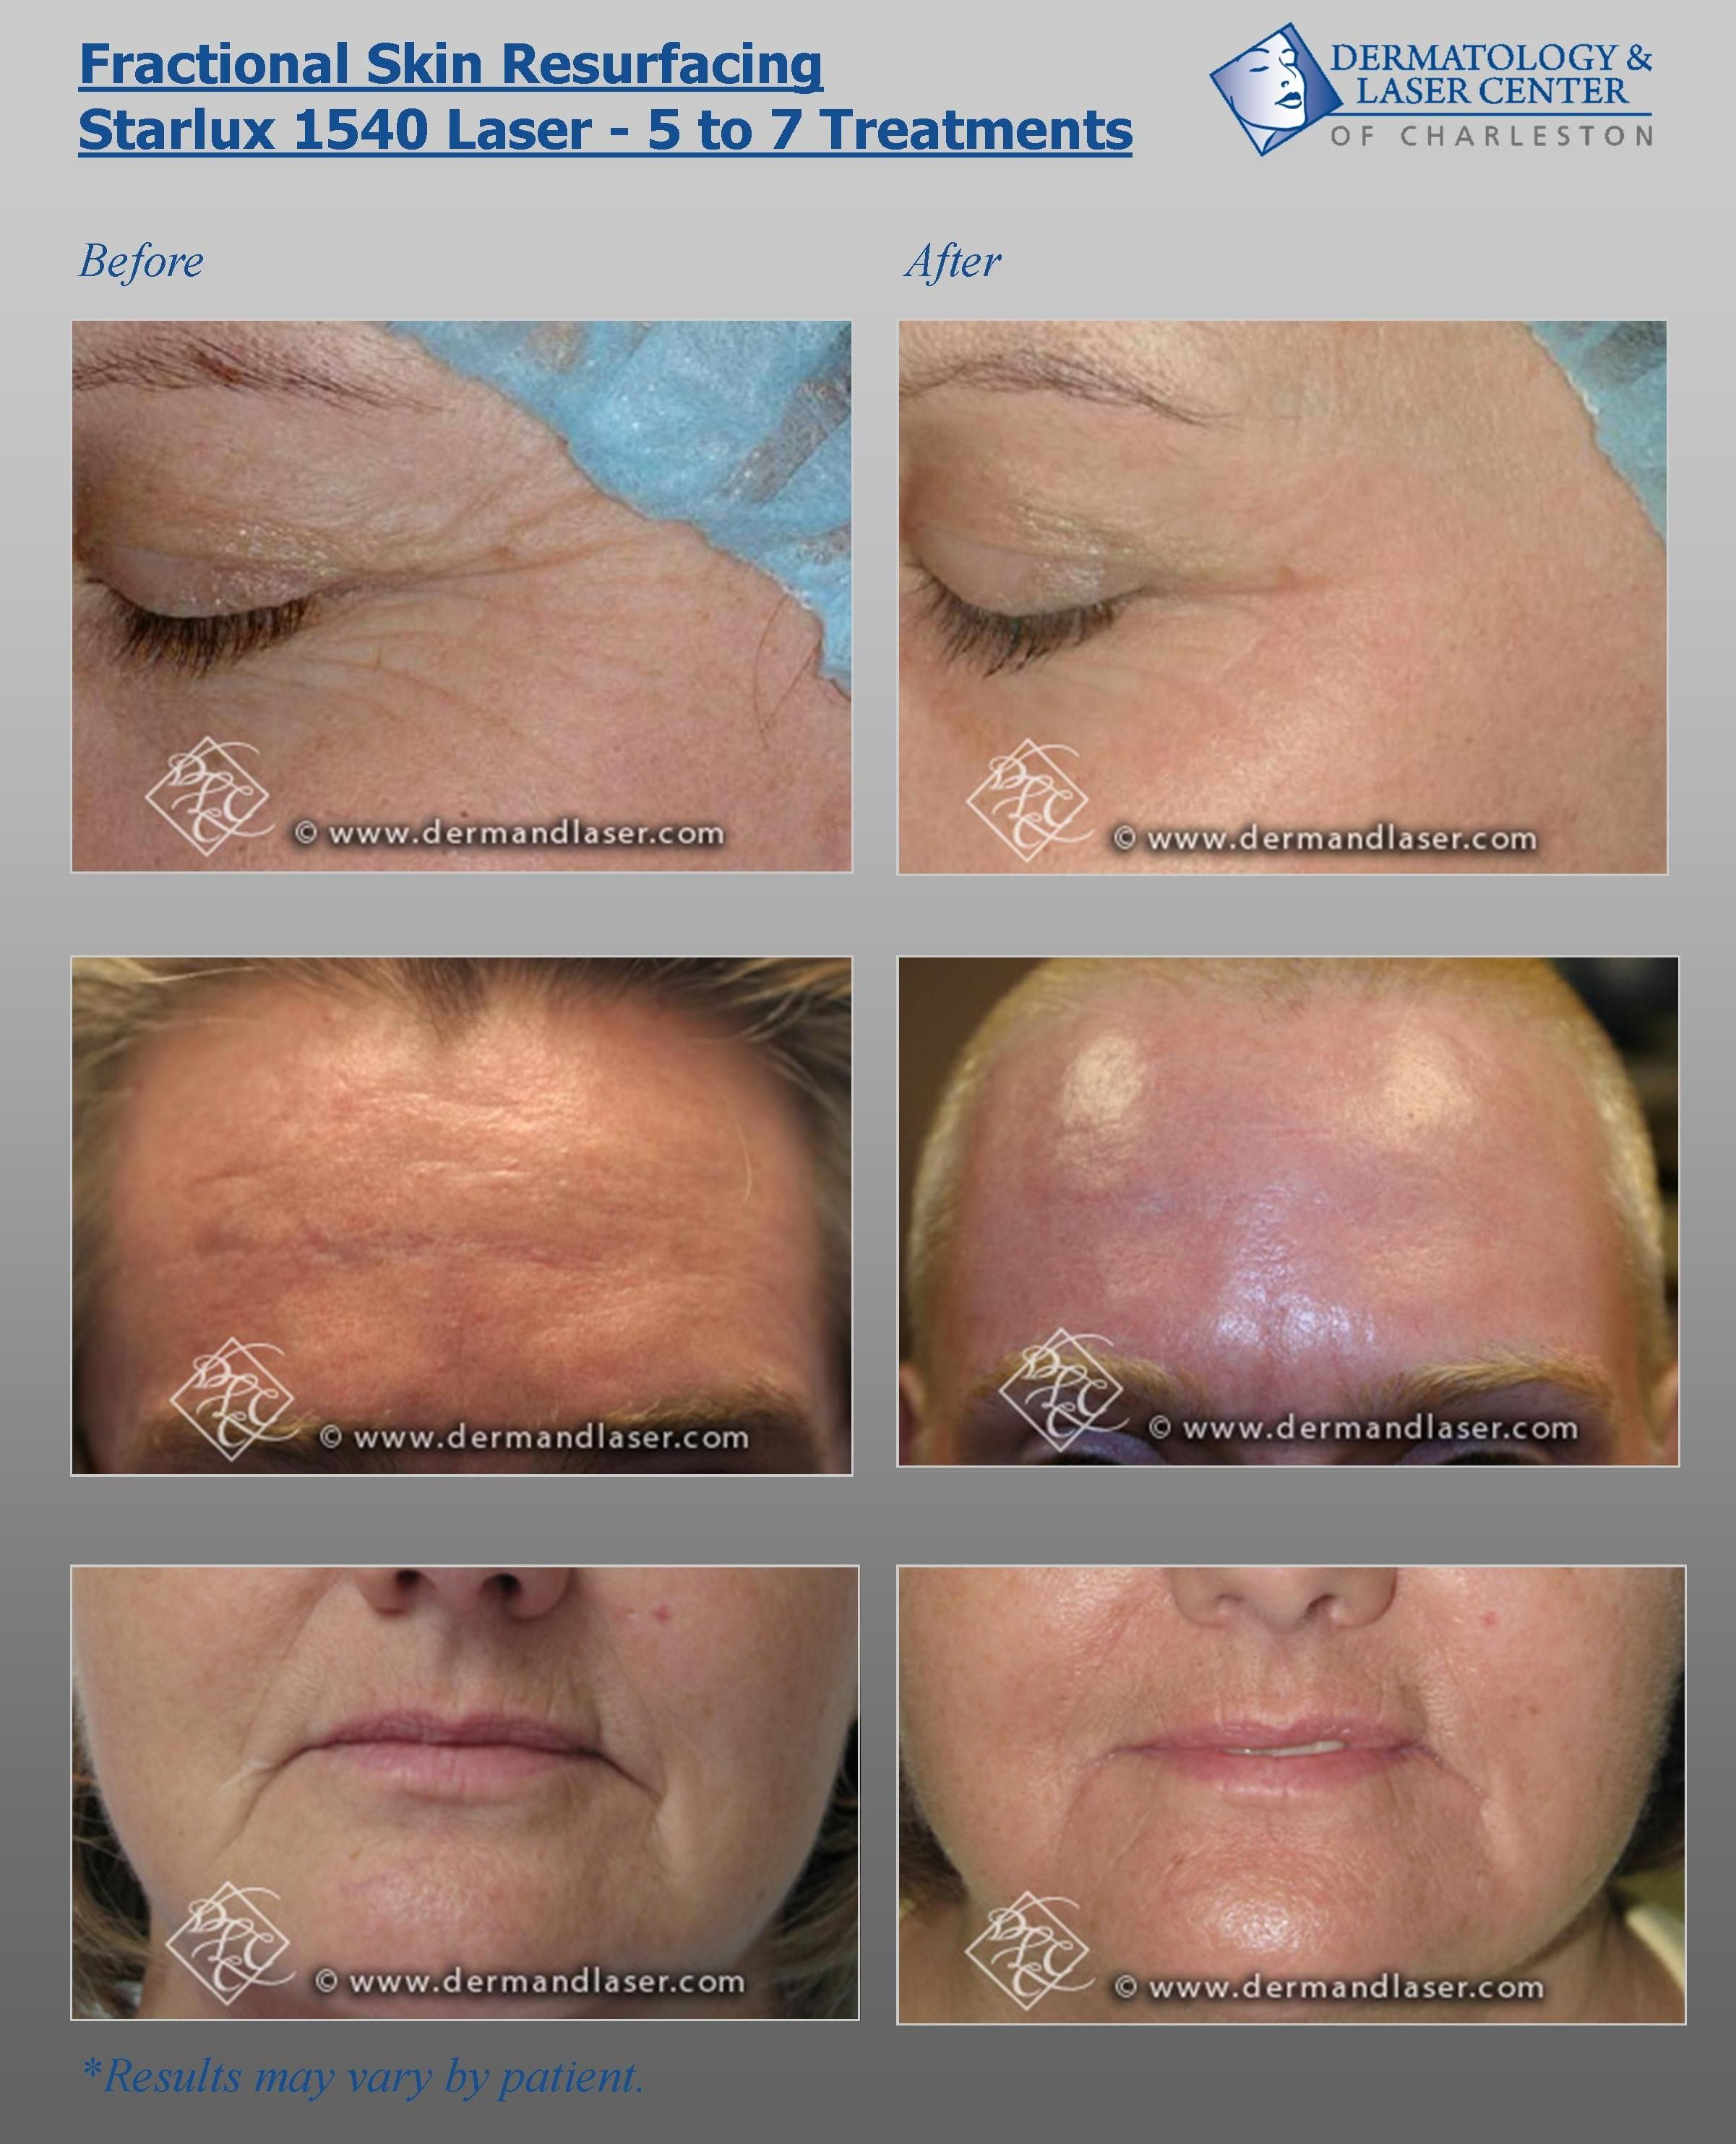 Fractional Skin Resurfacing with the Starlux 1540 Laser